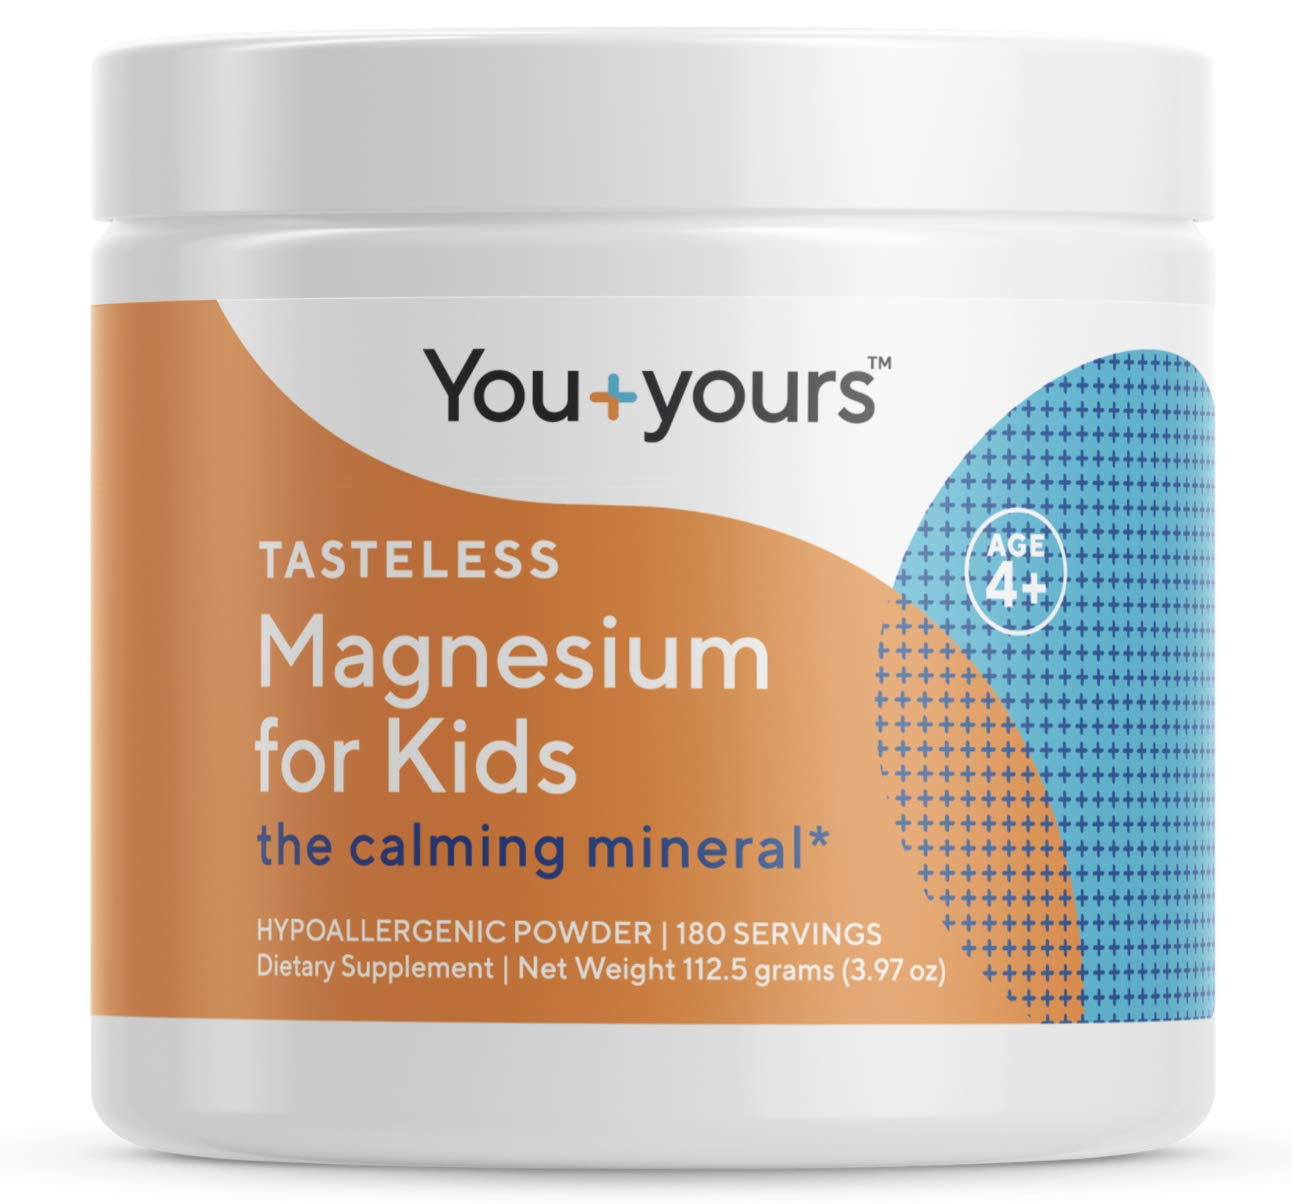 Tasteless, Calming Magnesium for Kids- 3 Month Supply- Vegan, Non-GMO, Hypoallergenic, Third-Party Tested for Purity and Potency